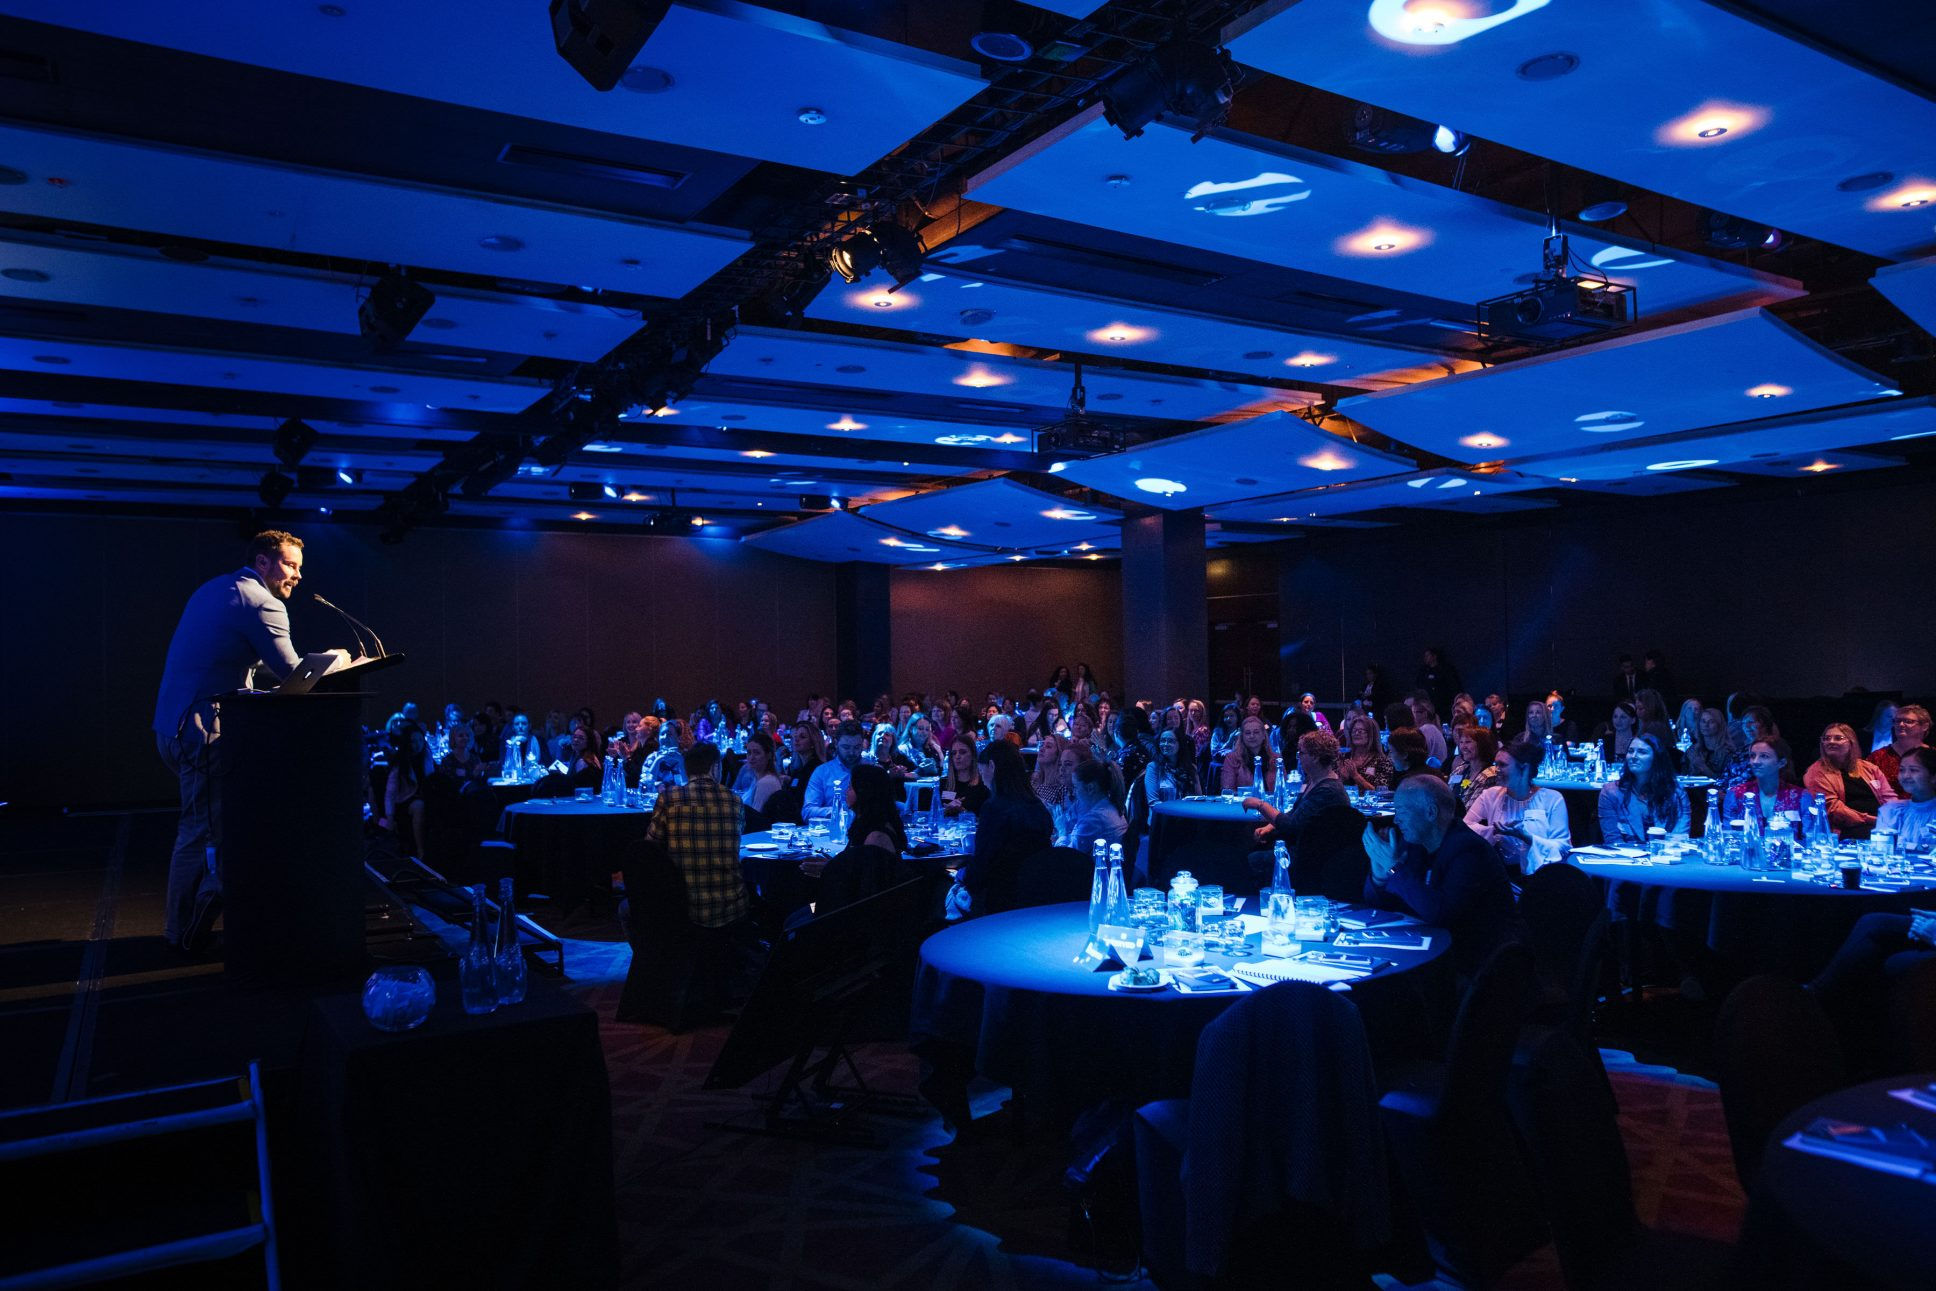 Conference at Pullman Auckland.